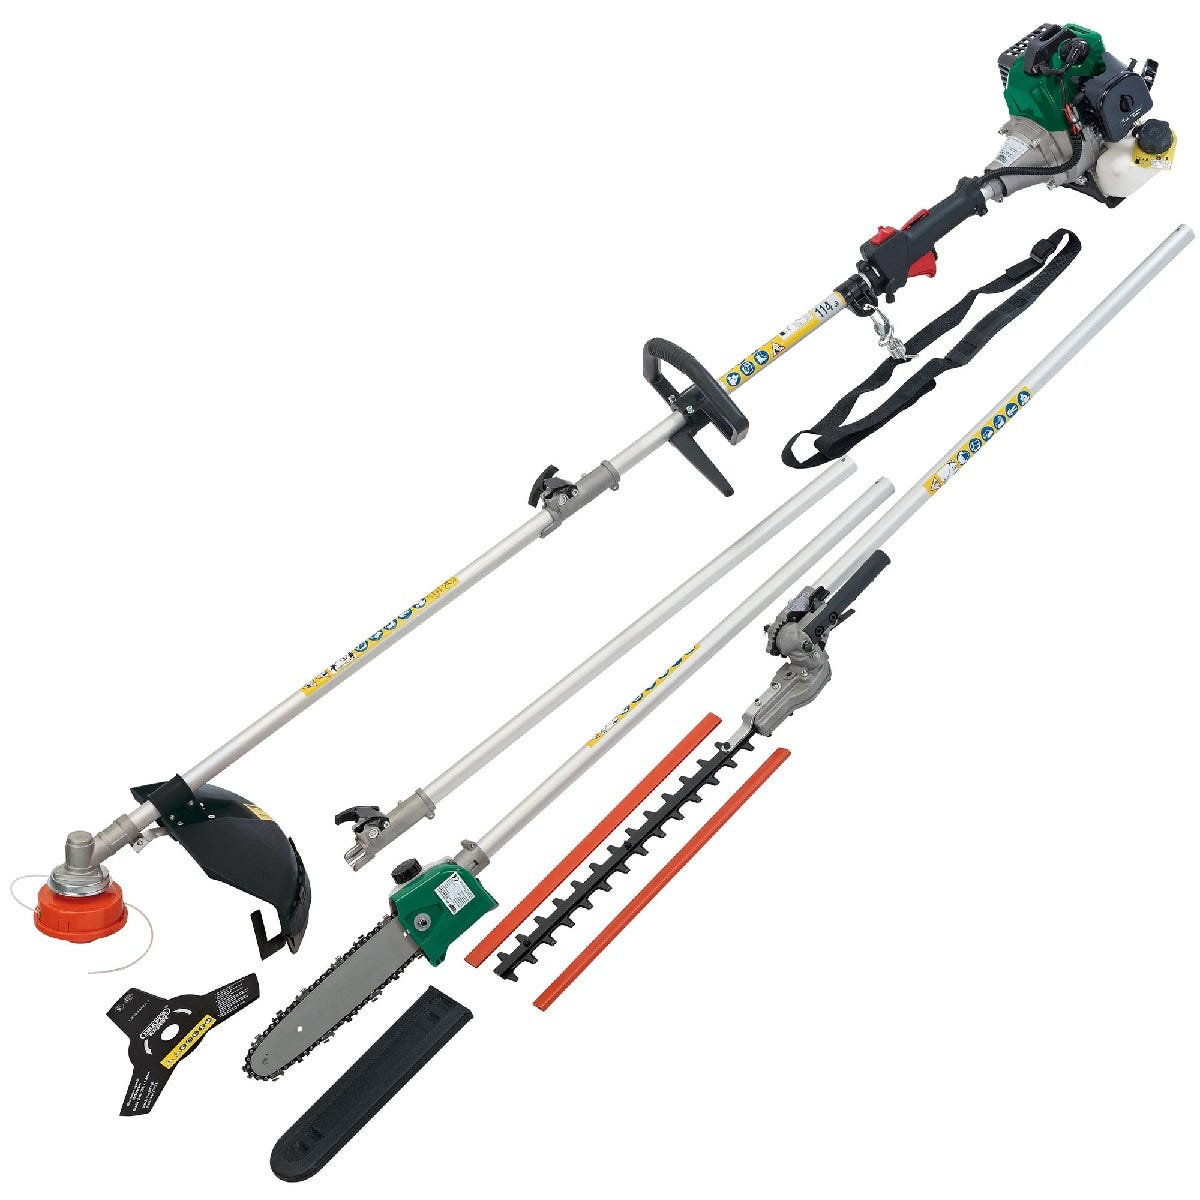 Draper 4-in-1 Petrol Garden Tool - Grass Trimmer/Brush Cutter, Pruner/Saw, Hedge Trimmer and Extension Pole (32.5cc)